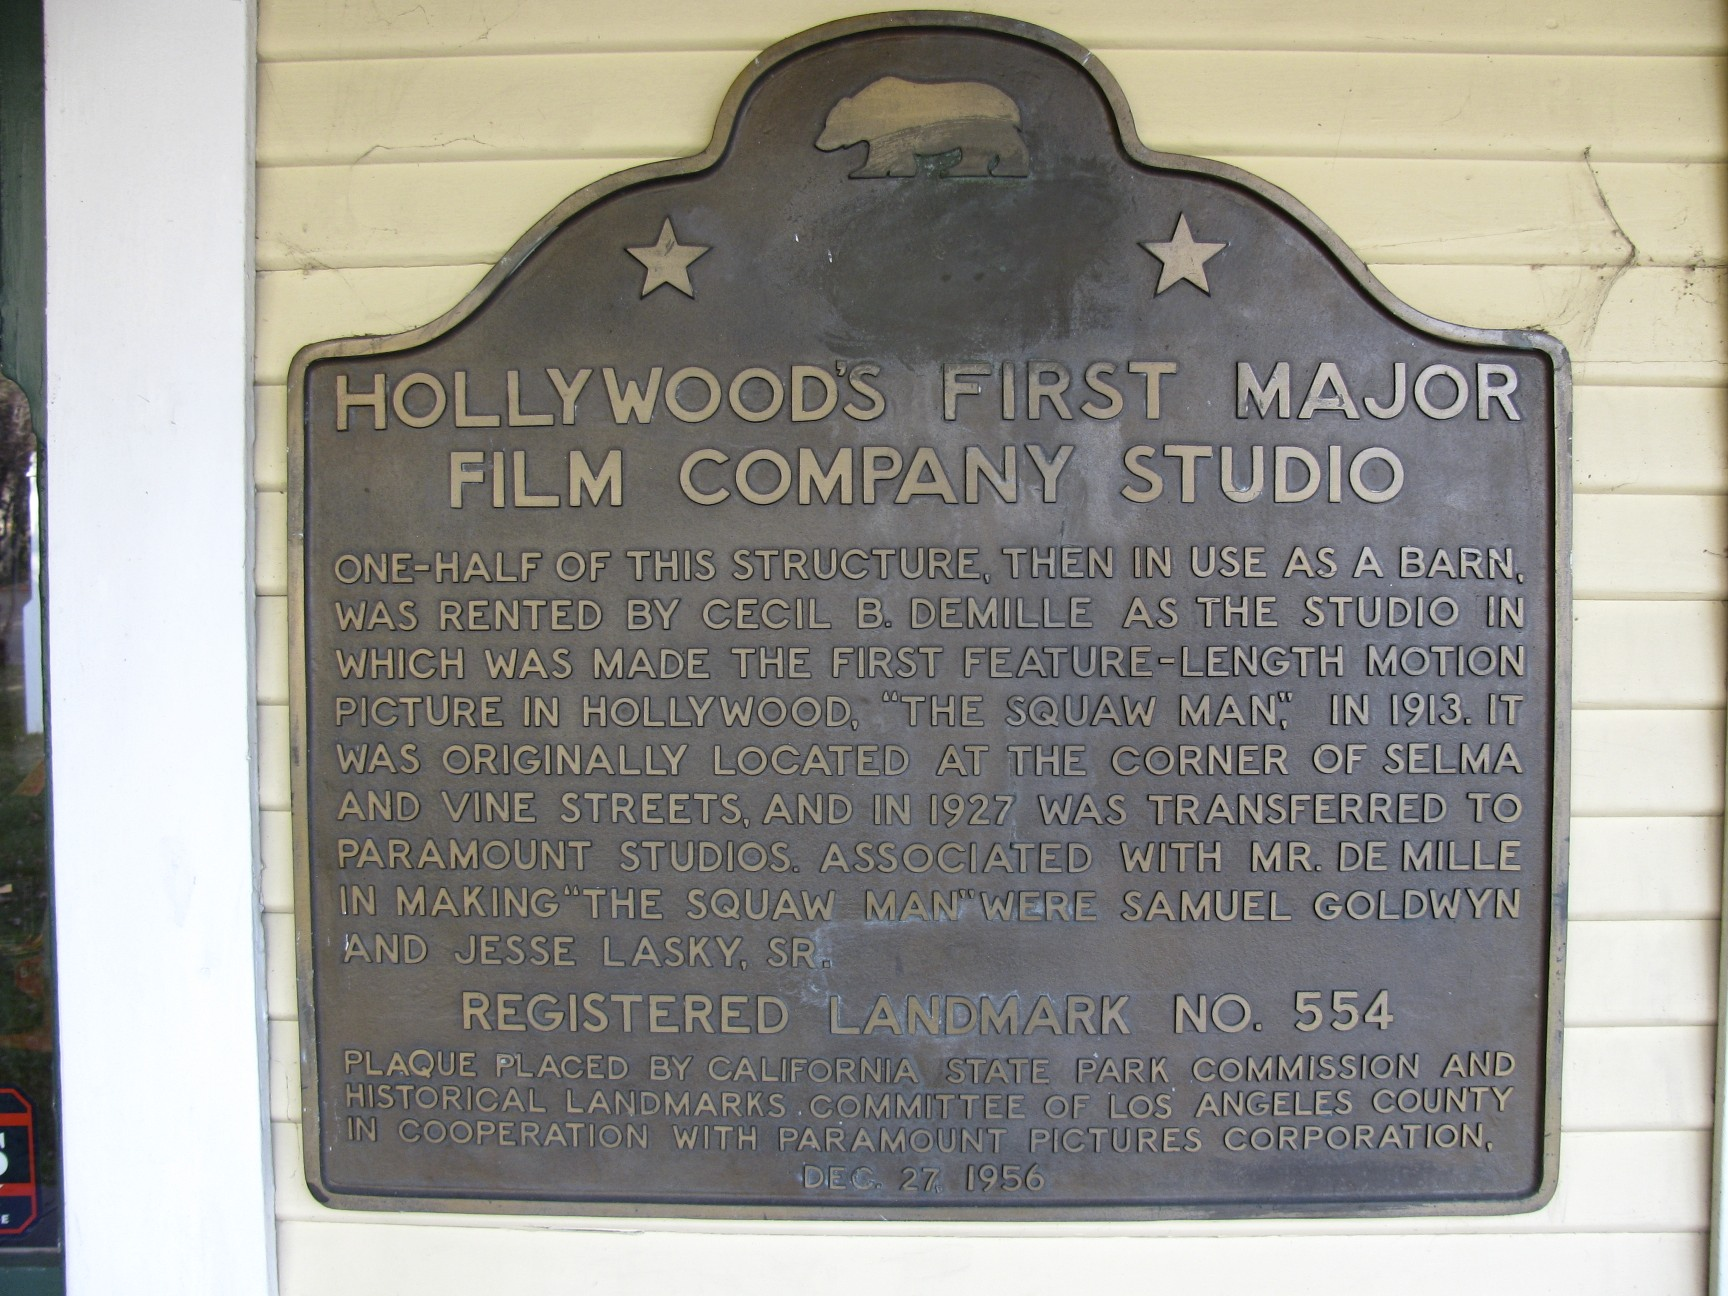 Hollywoods-first-major-film-company-studio-6674